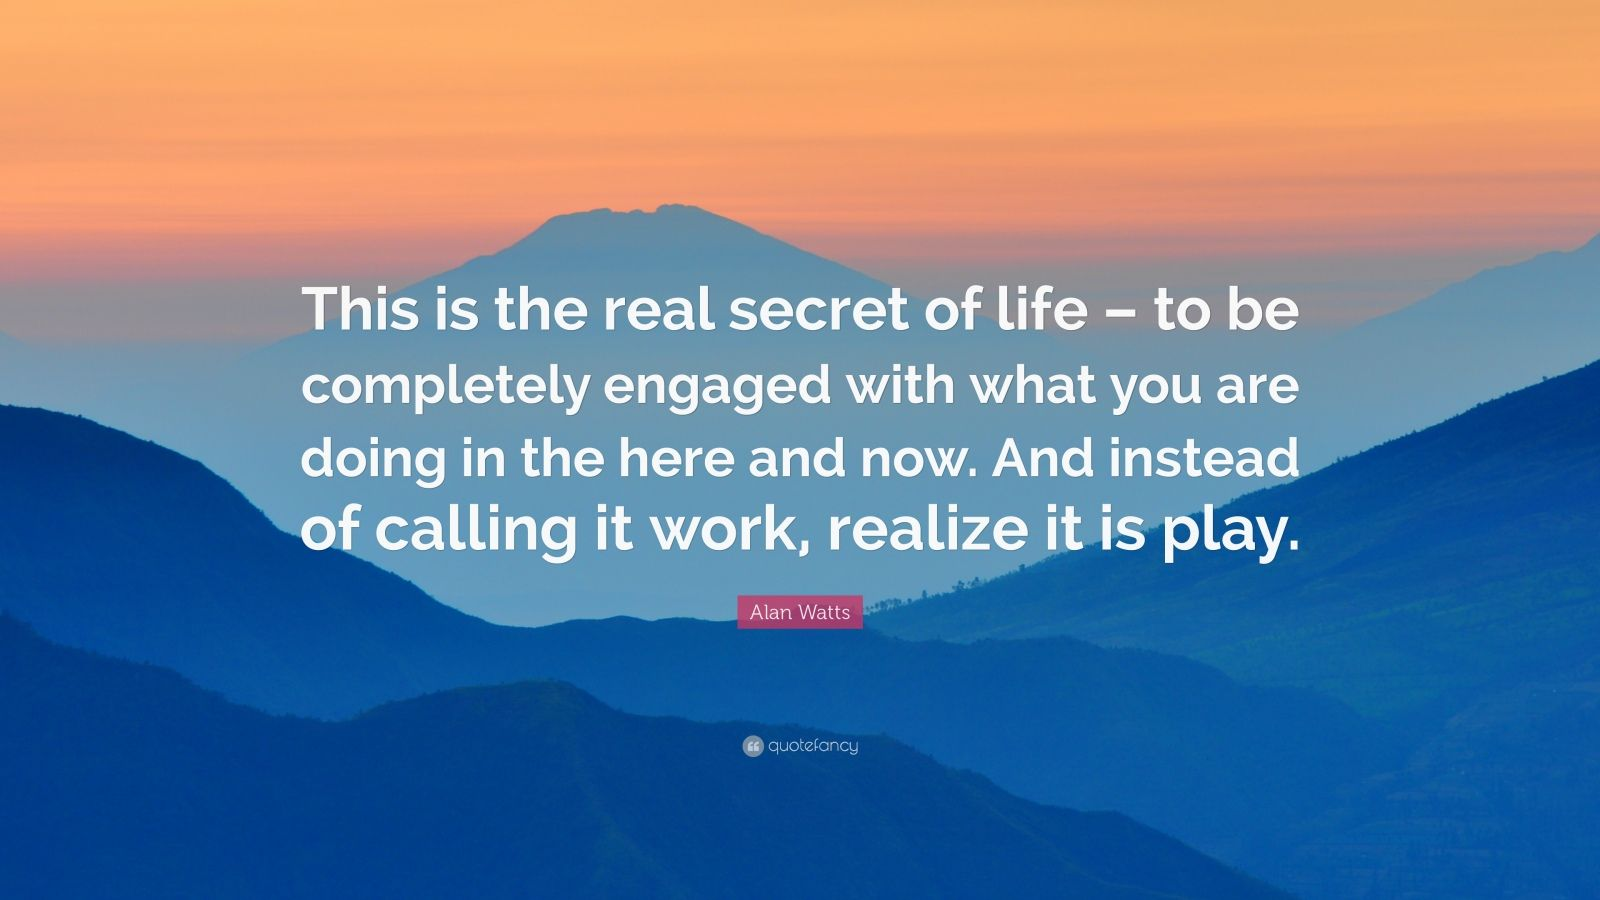 Motivational Life Quotes Wallpapers Alan Watts Quote This Is The Real Secret Of Life To Be